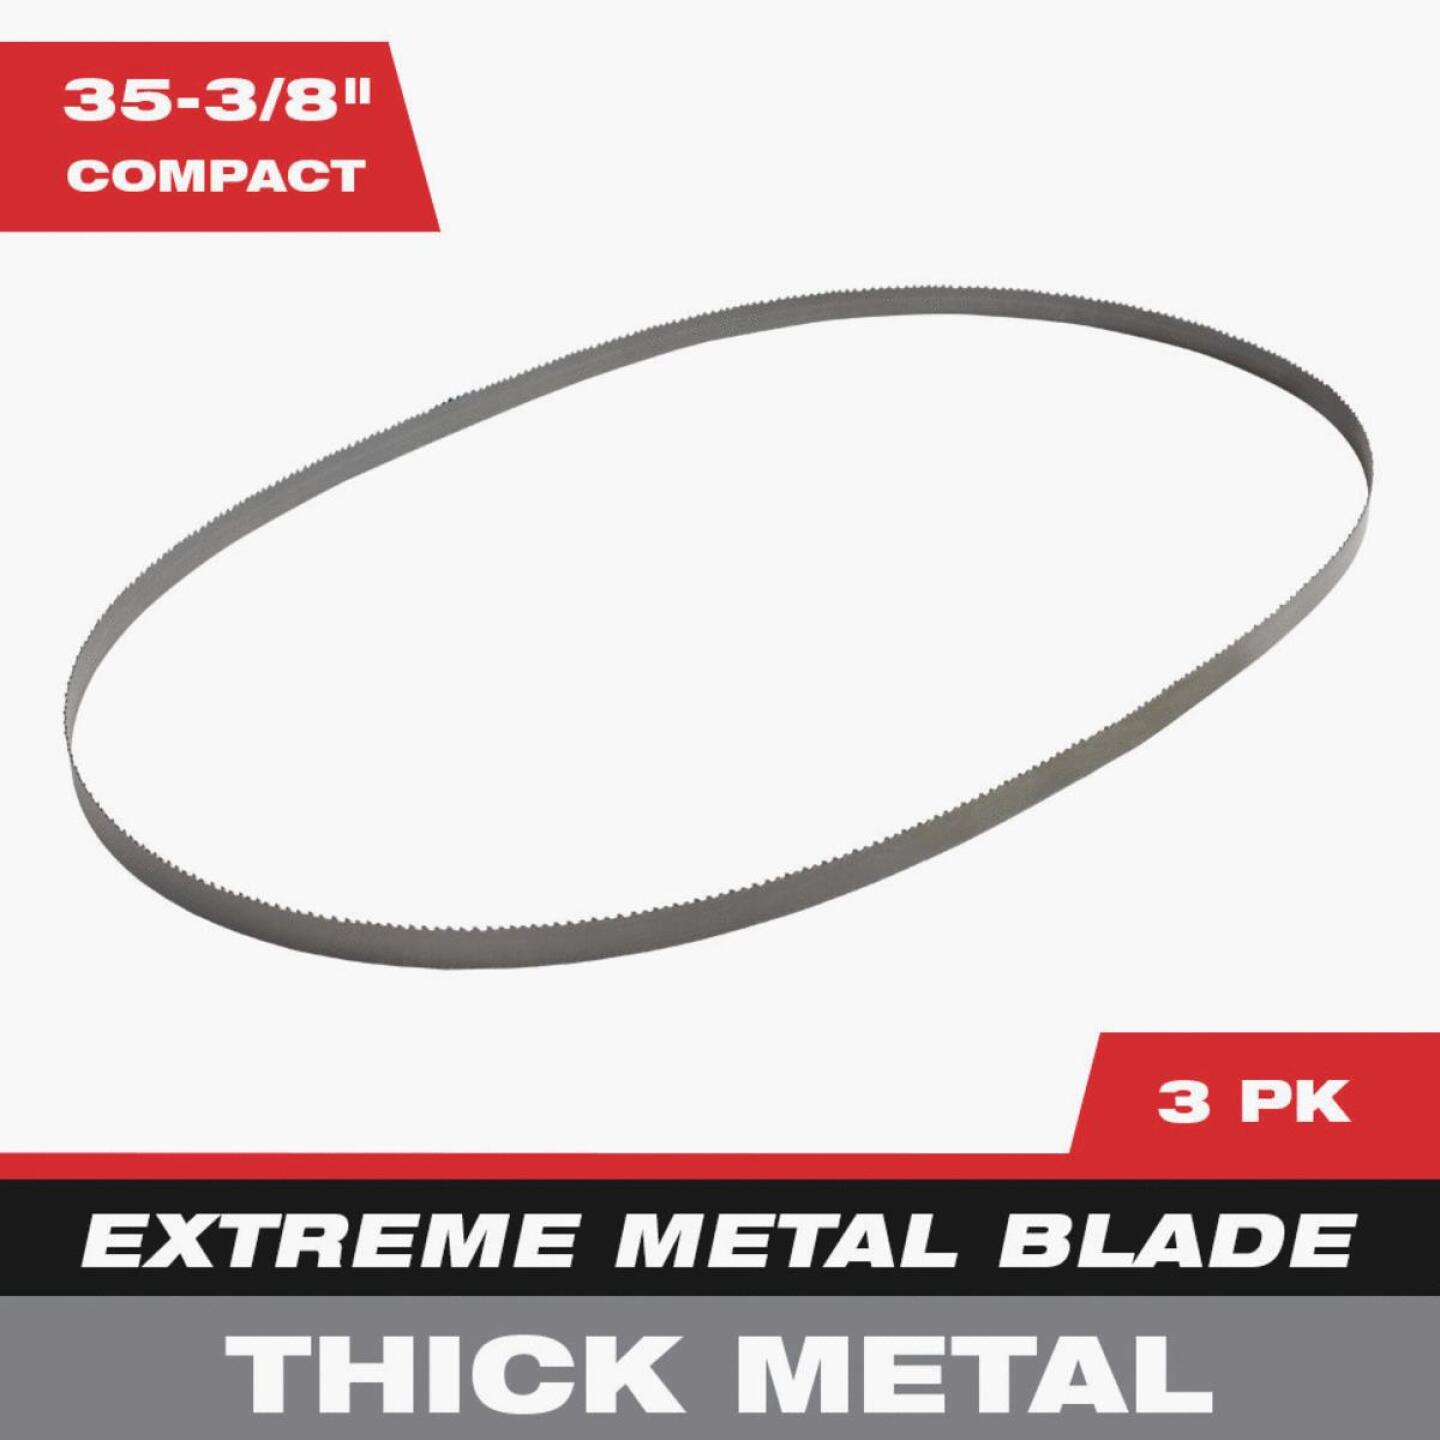 Milwaukee 35-3/8 In. 8/10 TPI Extreme Metal Band Saw Blade (3-Pack) Image 2